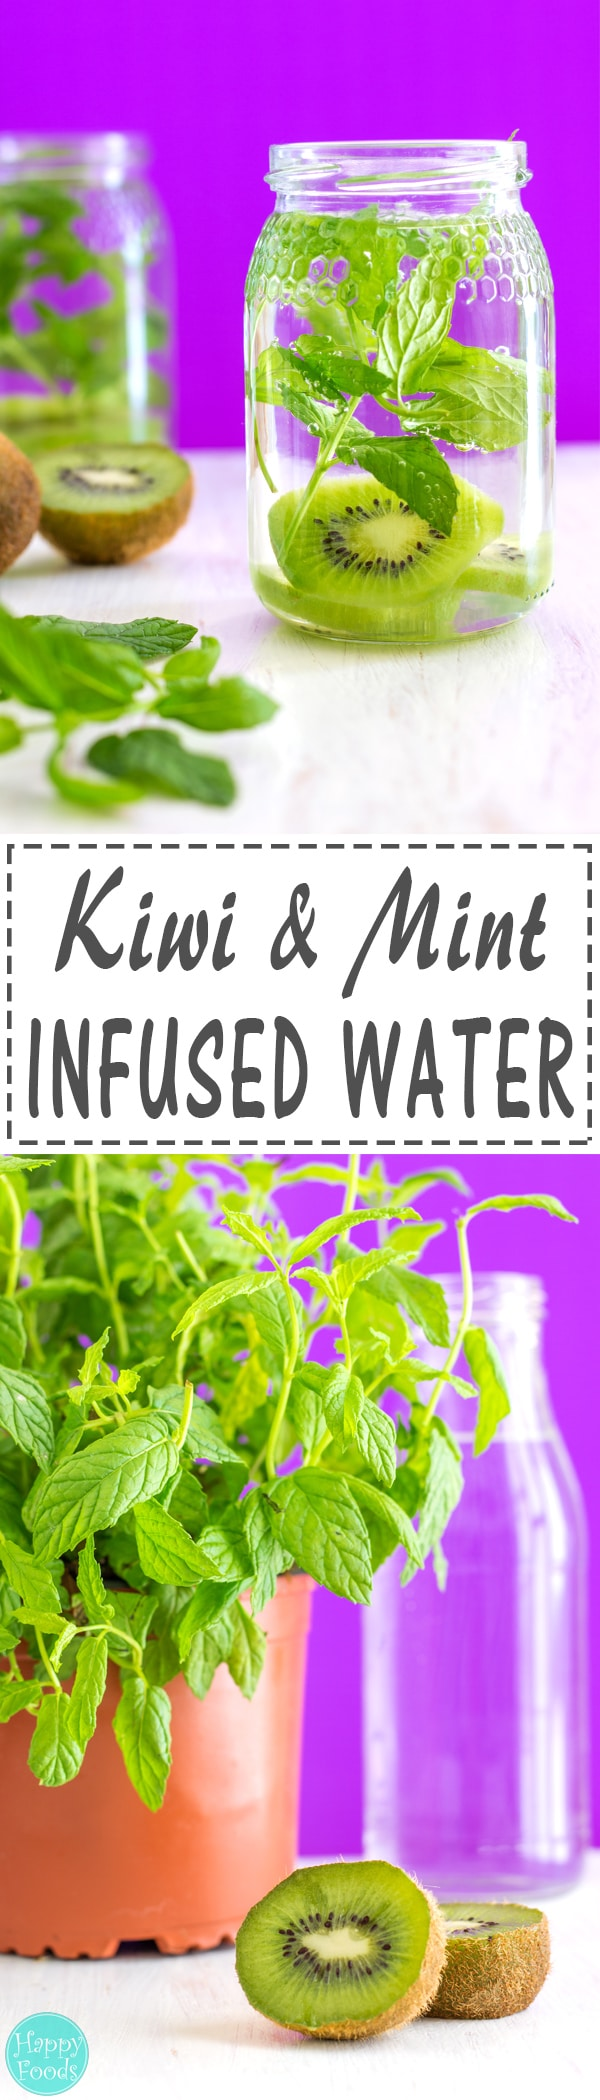 Kiwi and Mint Infused Water Recipe + 5 Tips for perfect Infused Water - Perfect for hydrating on hot summer days! Naturally flavored drink ❤ | happyfoodstube.com